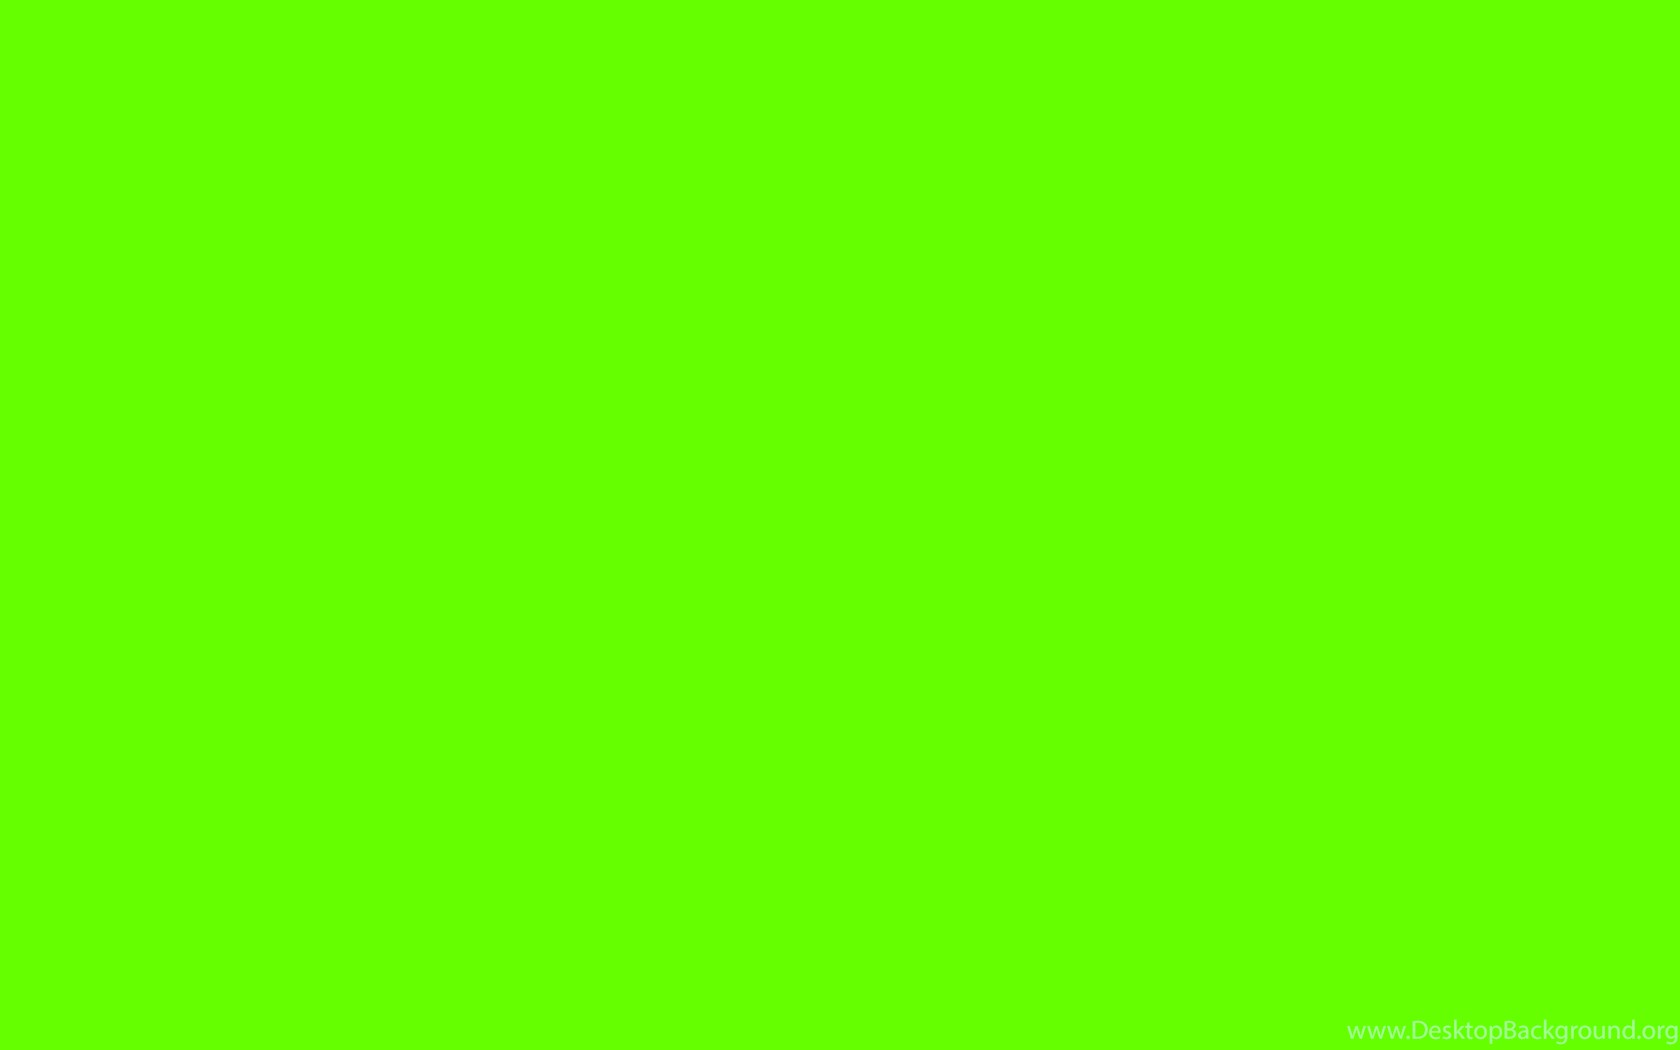 2560x1440 Neon Green Solid Color Background |Bright Green Color Background